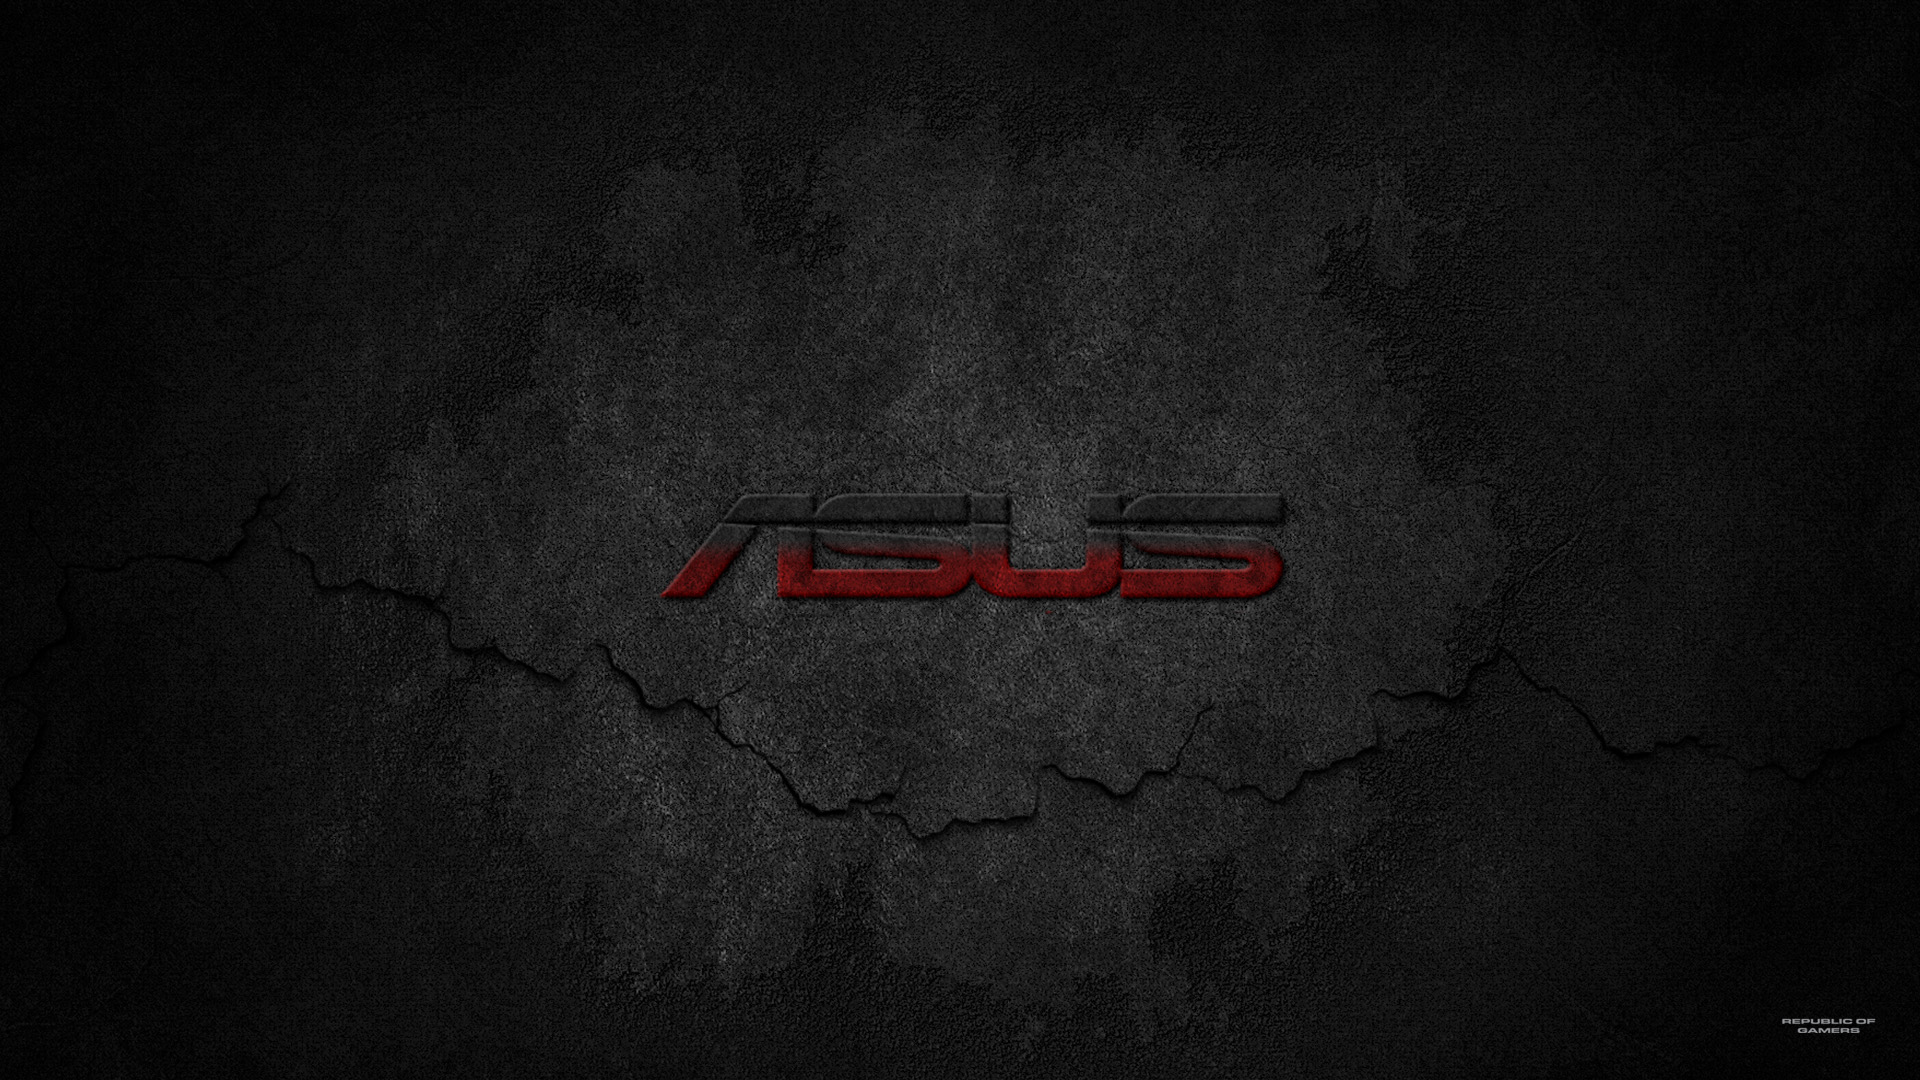 Red Asus Wallpaper: Premium Asus Wallpaper